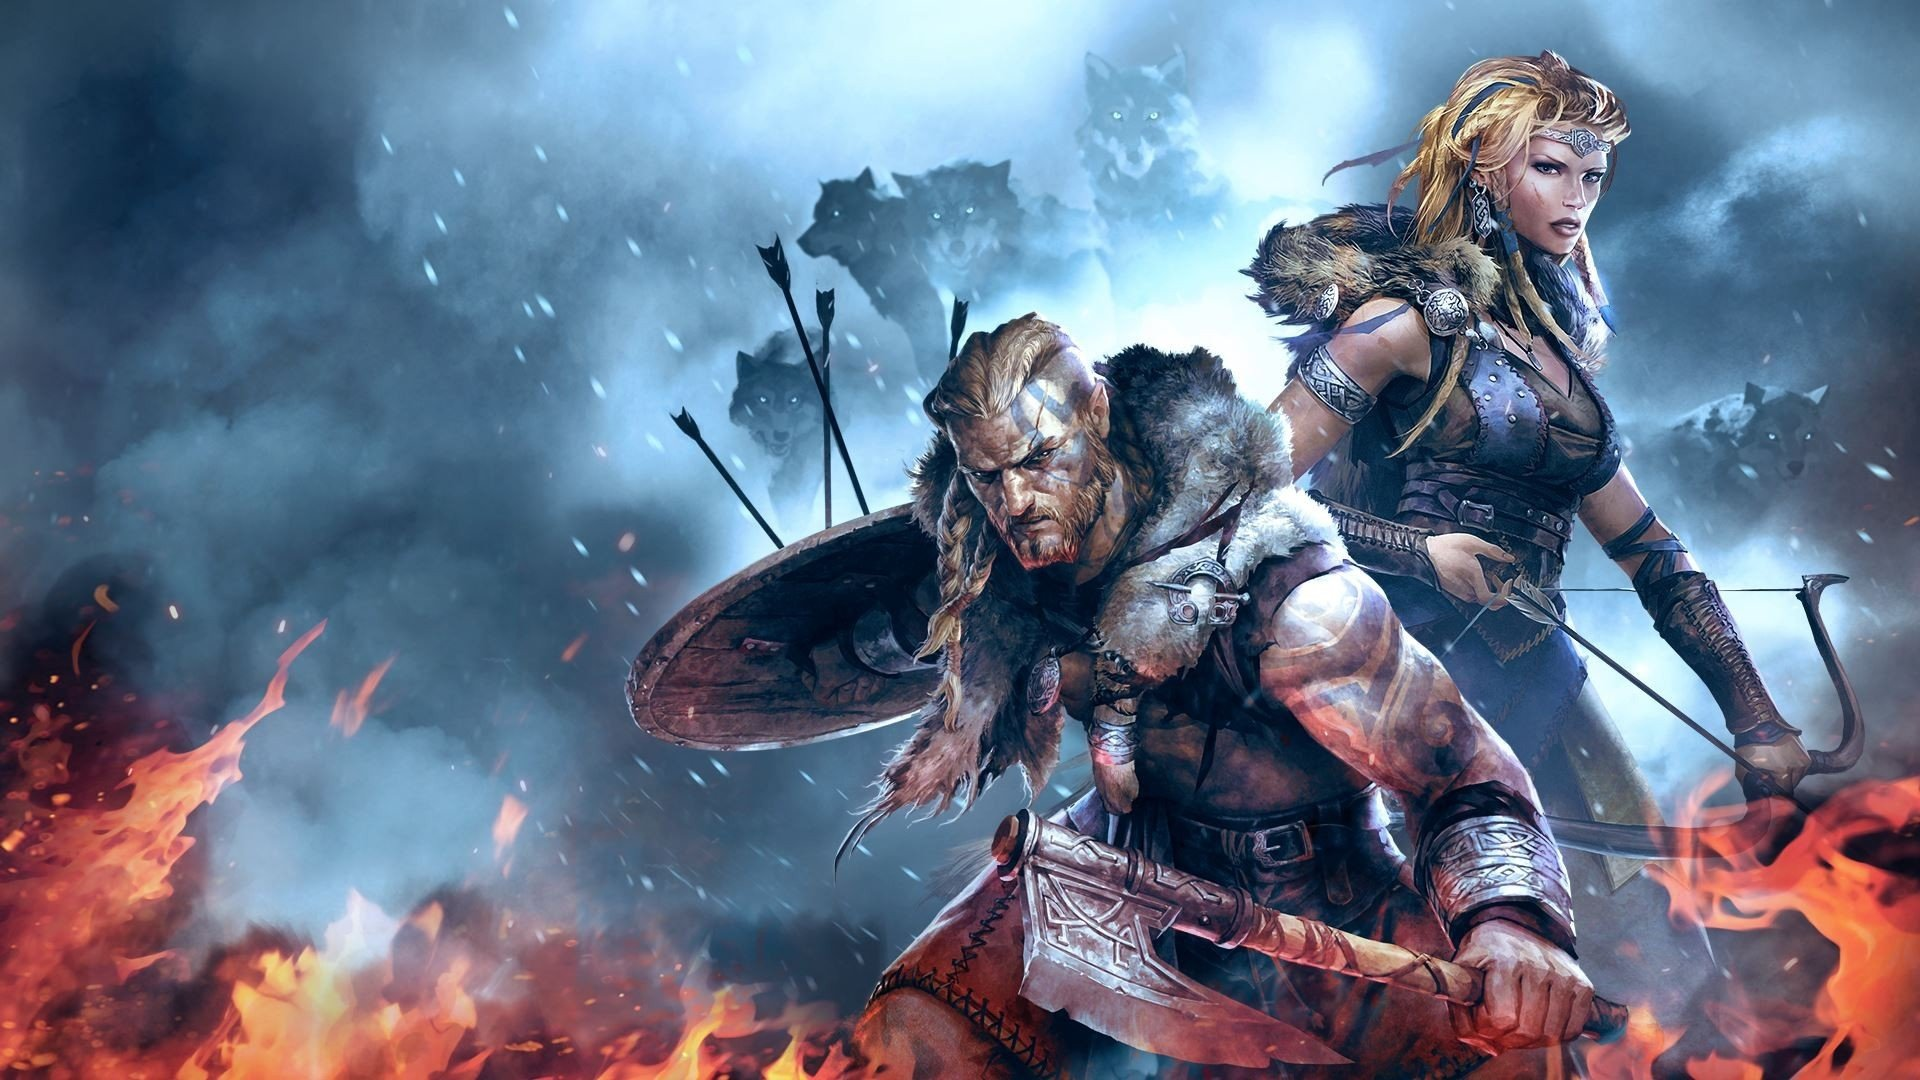 vikings wolves of midgard hd wallpaper background image 1920x1080 id 875993 wallpaper abyss. Black Bedroom Furniture Sets. Home Design Ideas